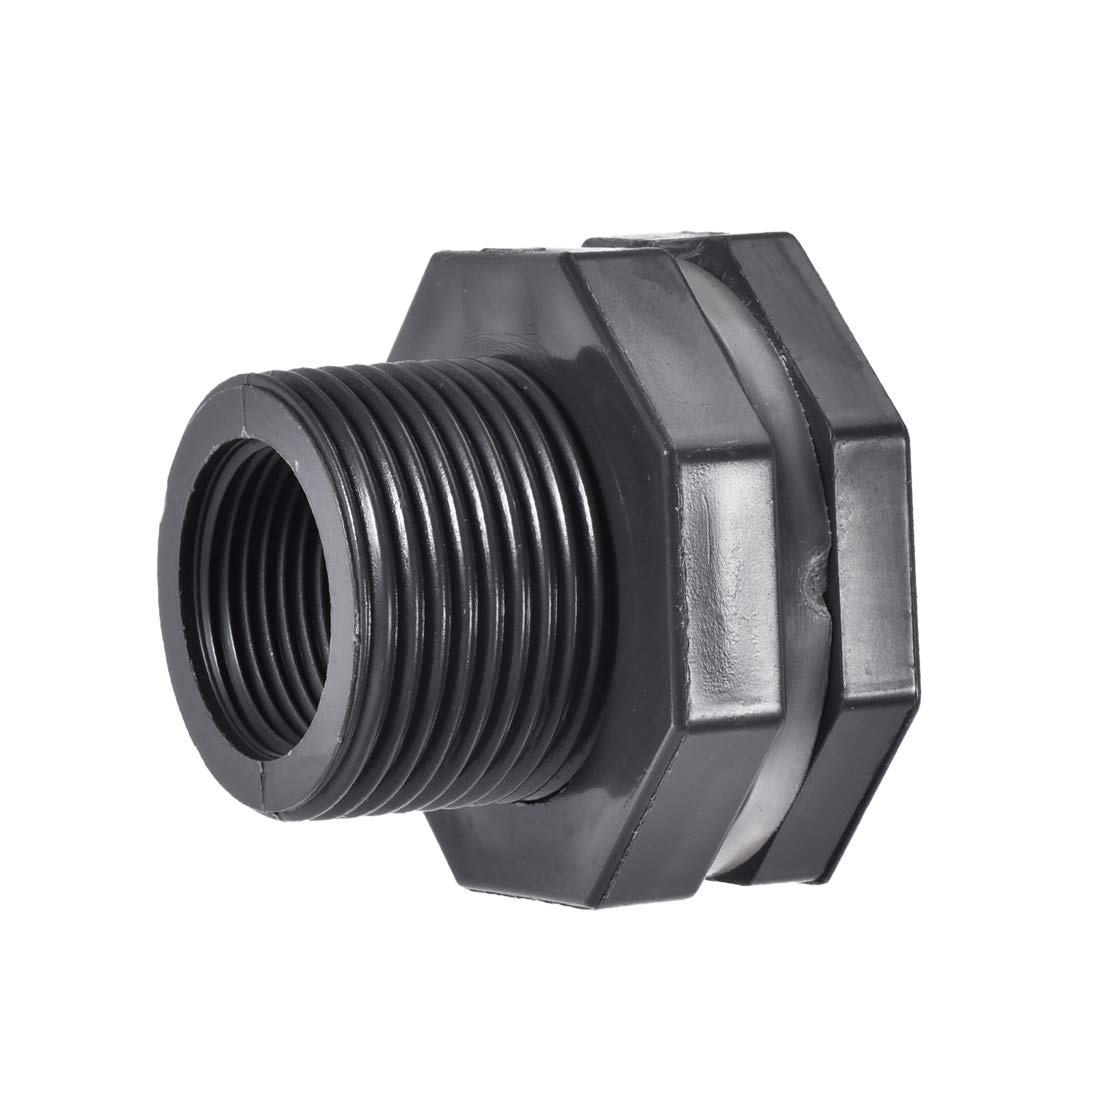 G1 Female Lengthen Gray Tube Adaptor Pipe Fitting with Silicone Gasket Pack of 2 for Water Tanks PVC uxcell Bulkhead Fitting